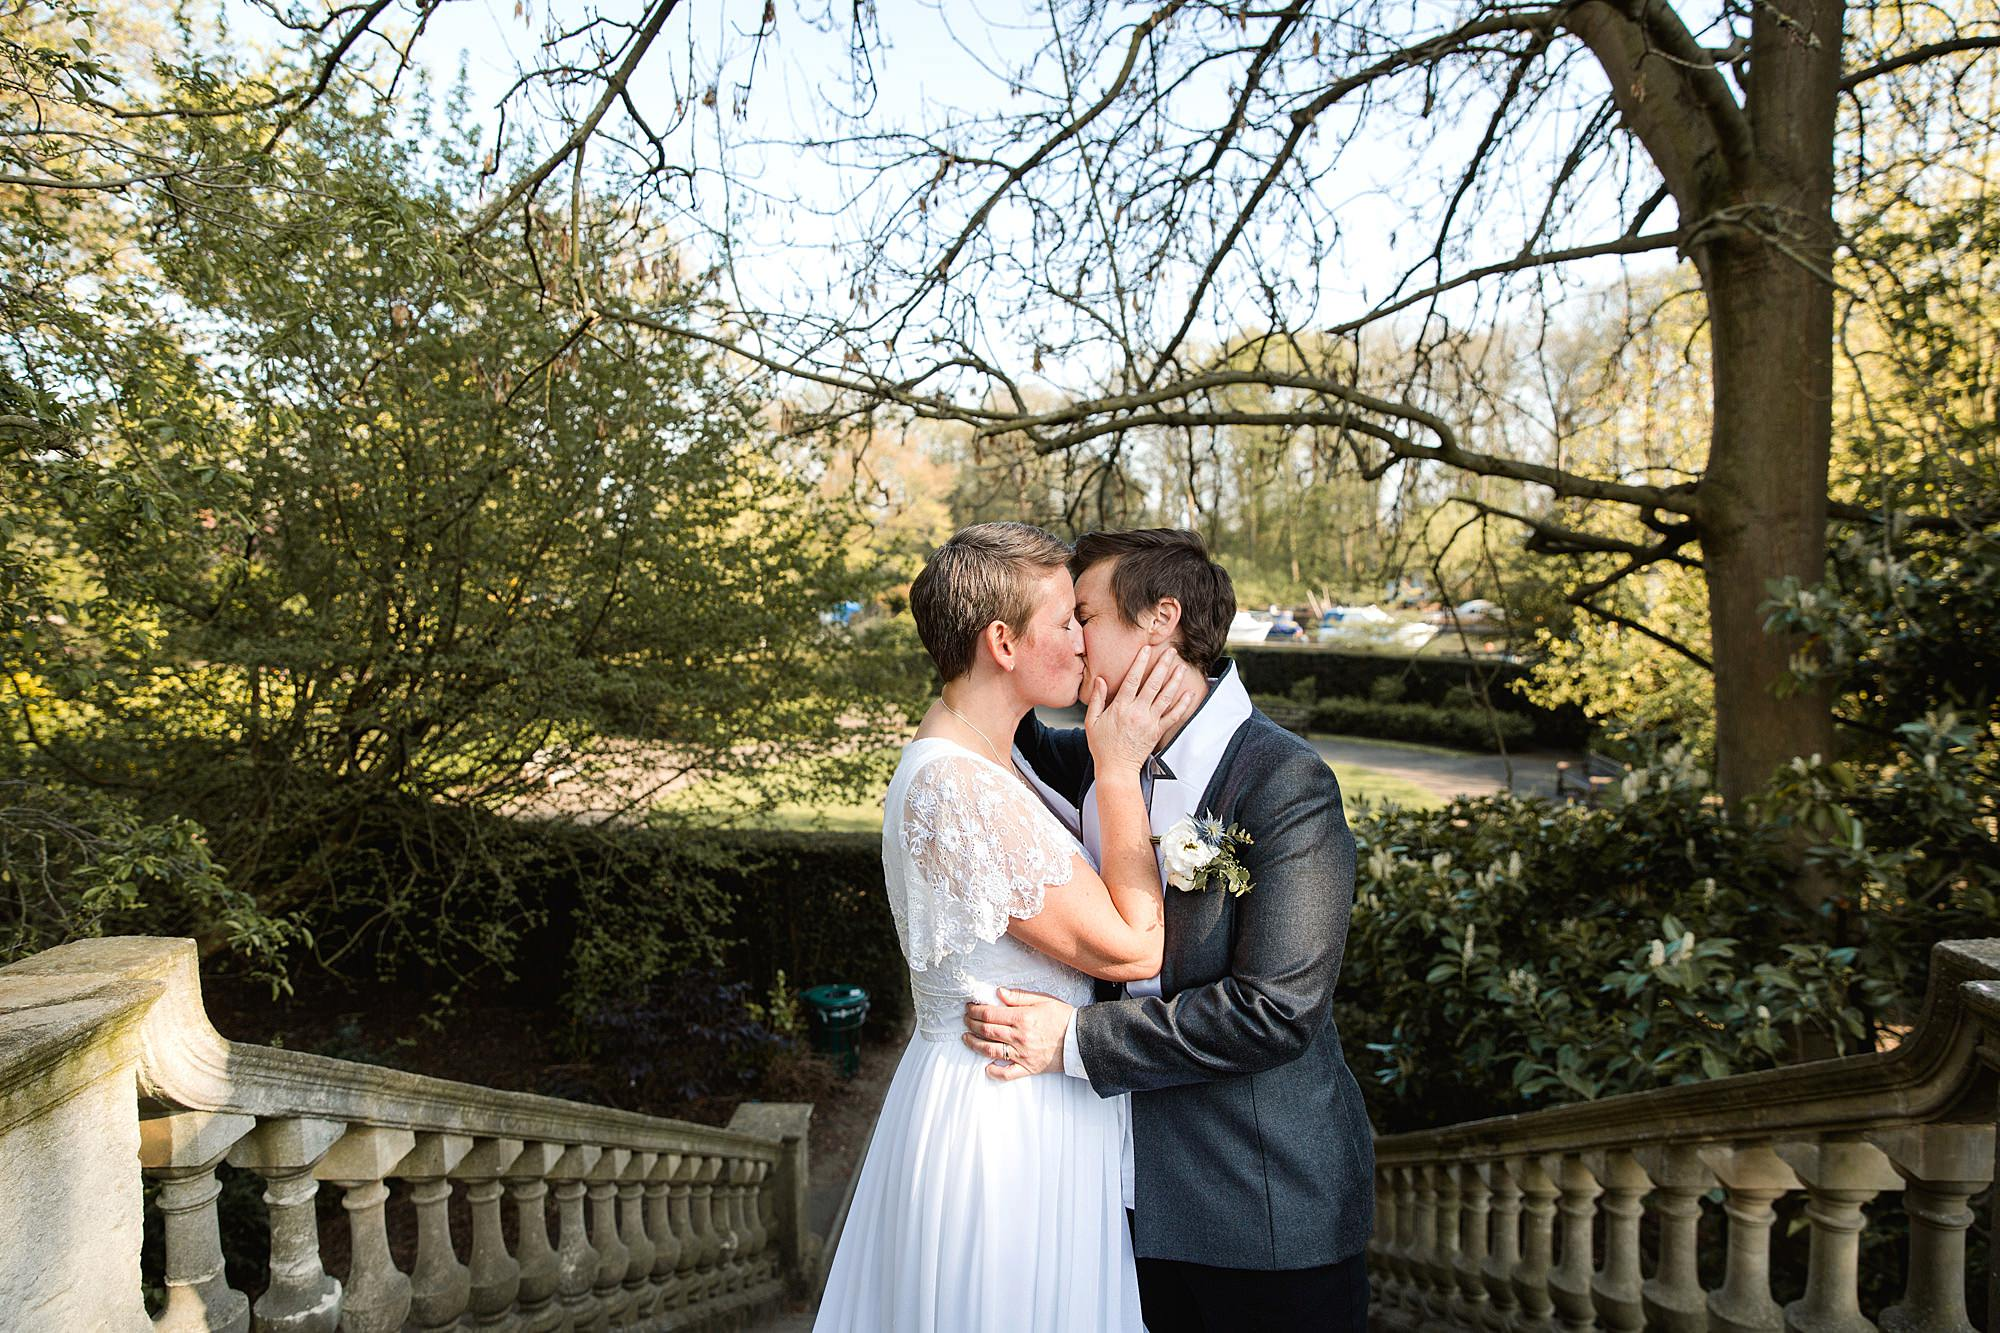 Twickenham wedding photography brides kiss on top of bridge at york house